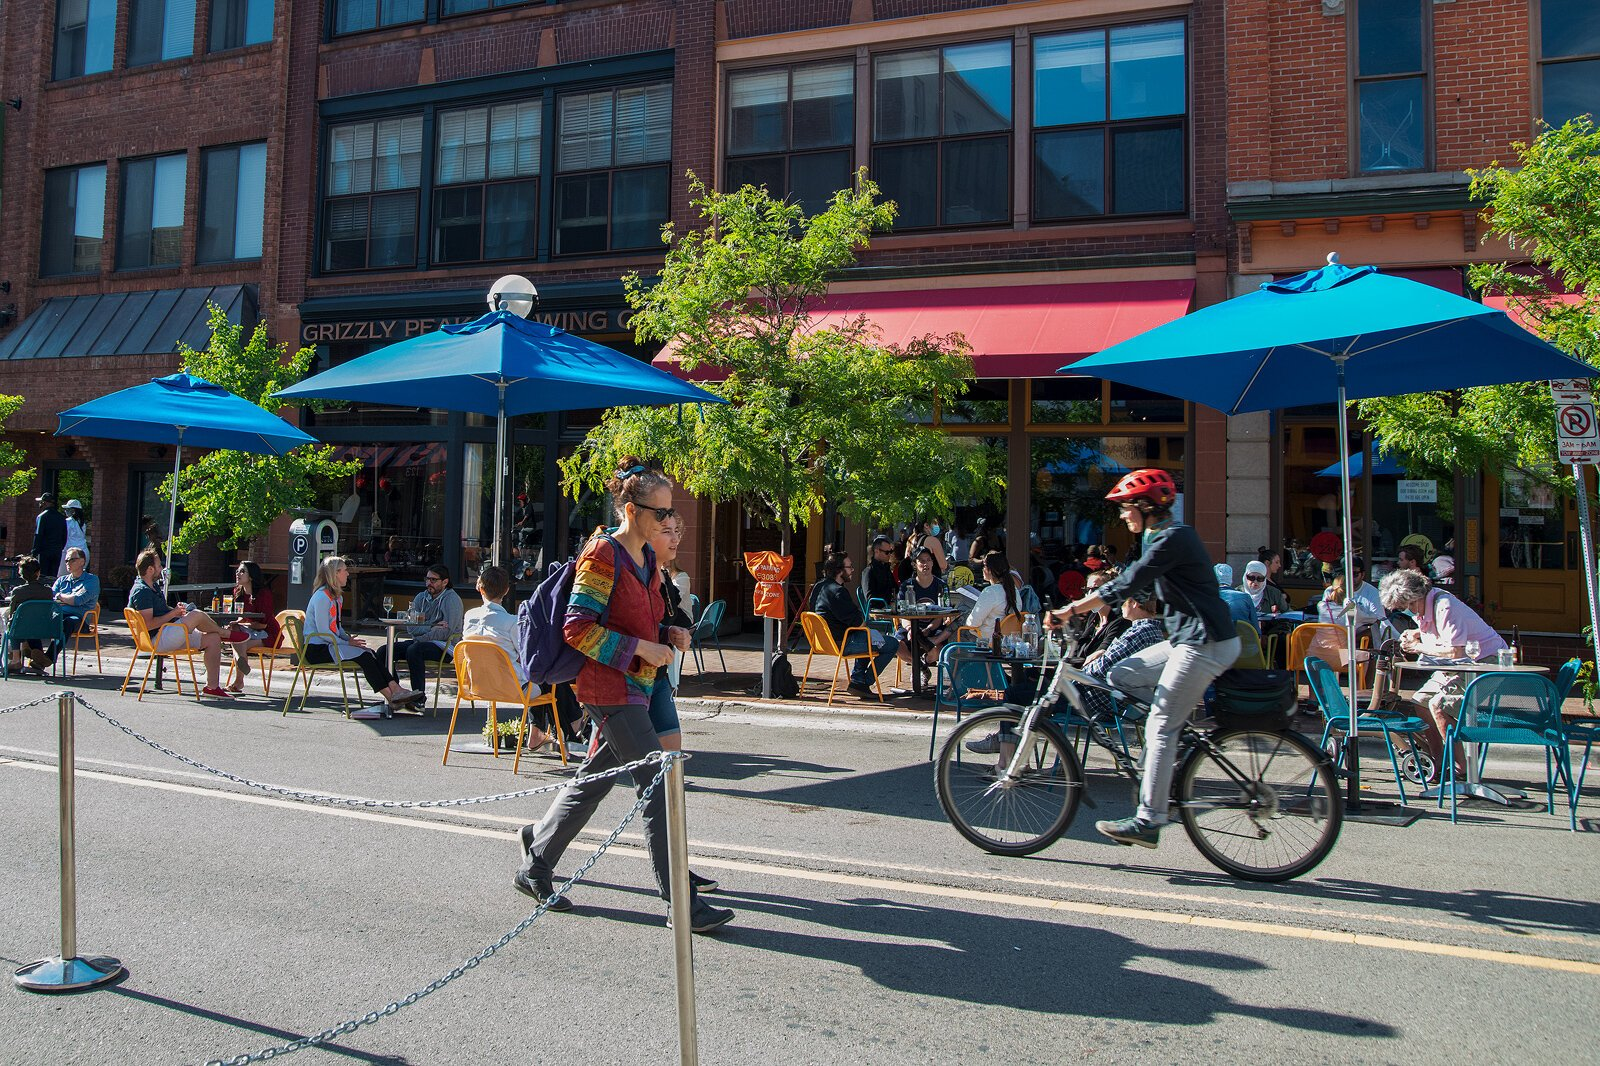 People walk and bike down Washington Street in Ann Arbor.